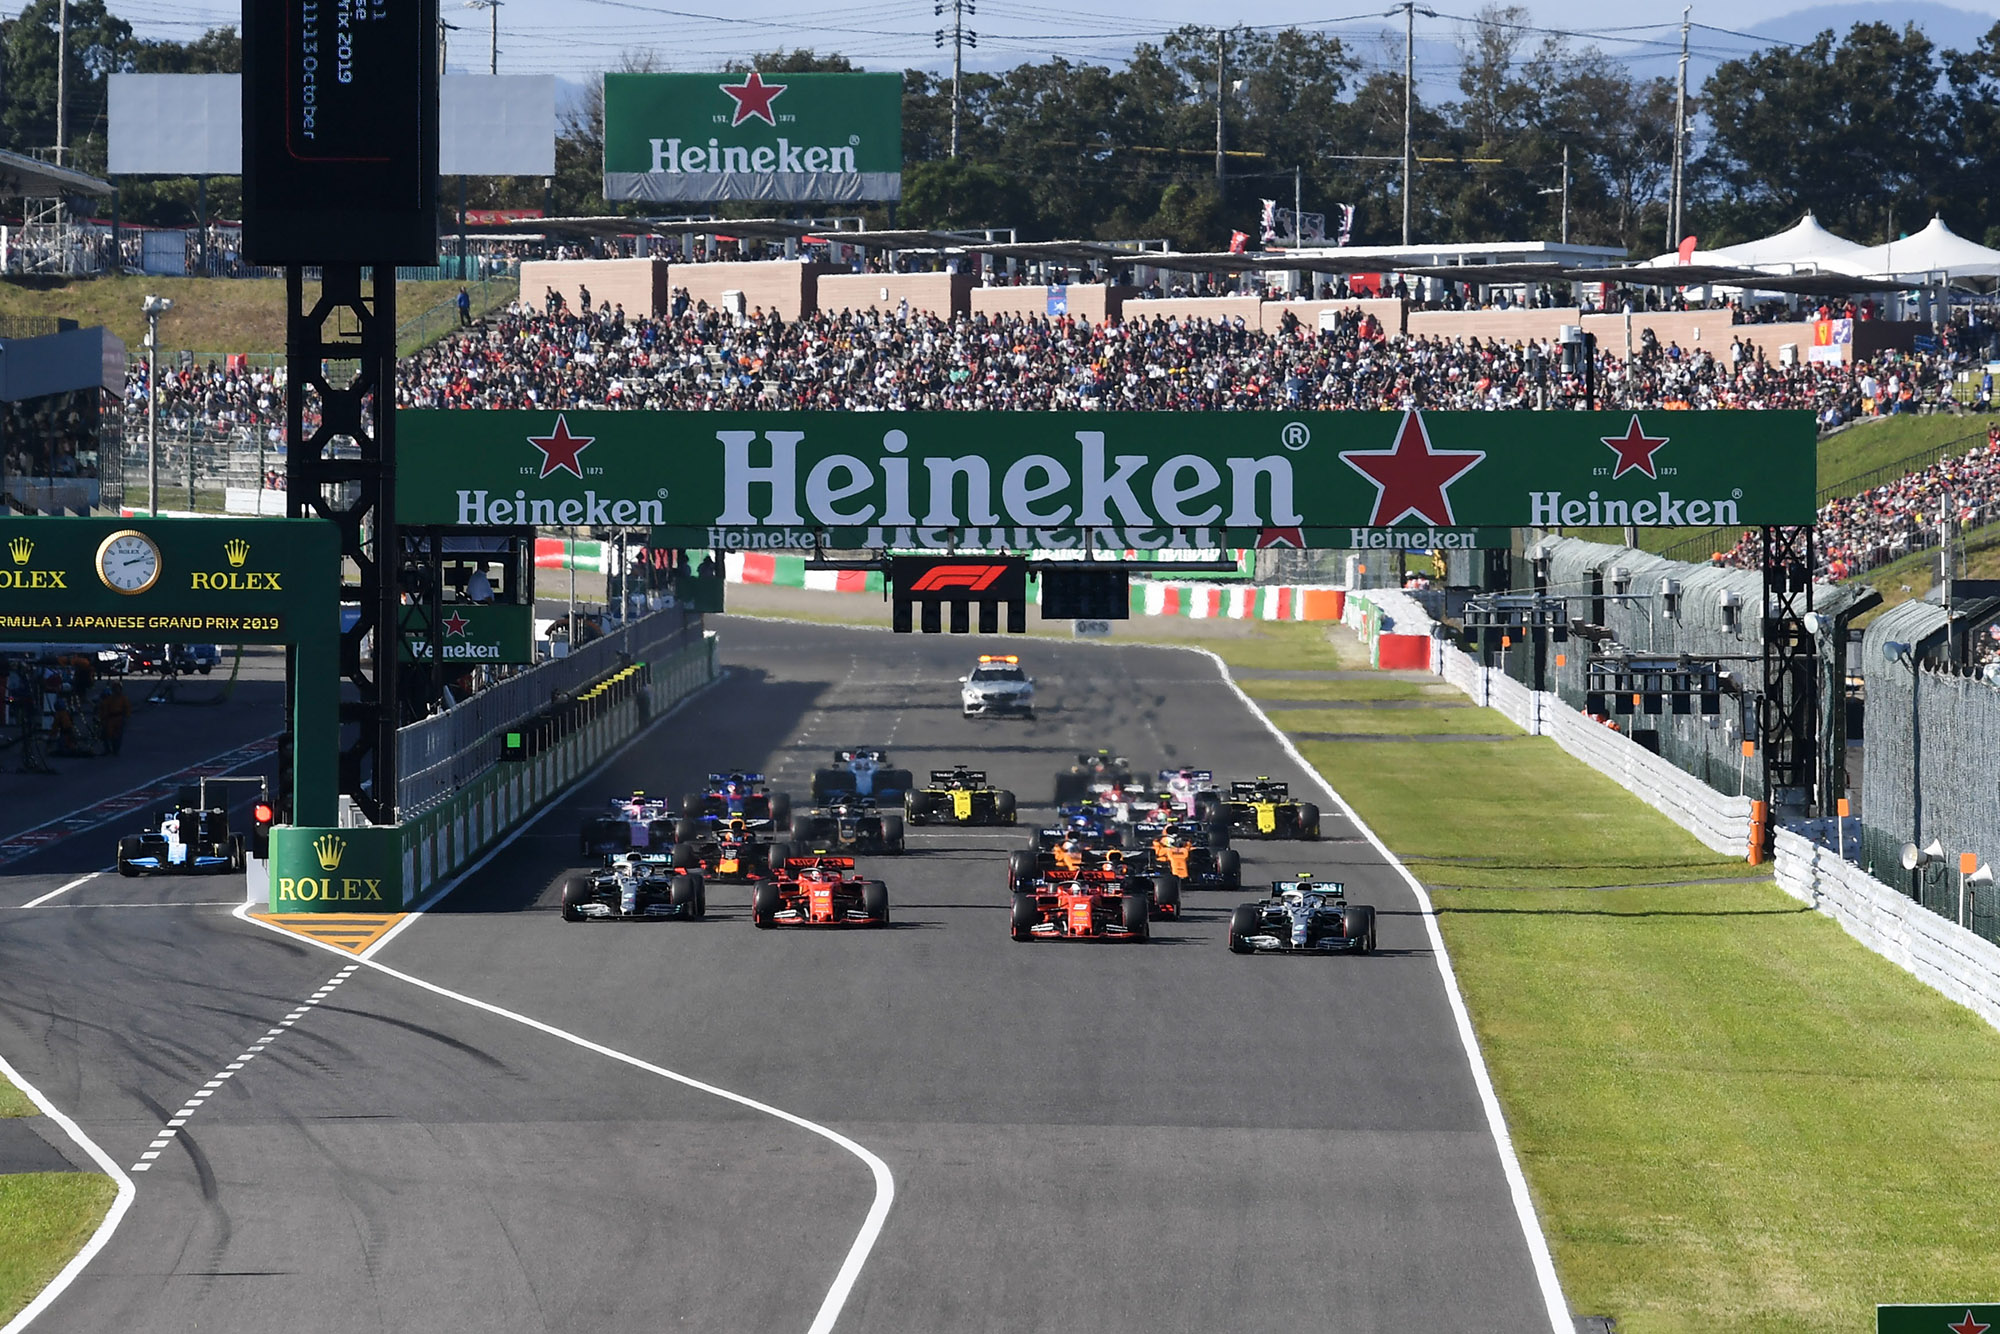 2019 F1 Japanese Grand Prix race results